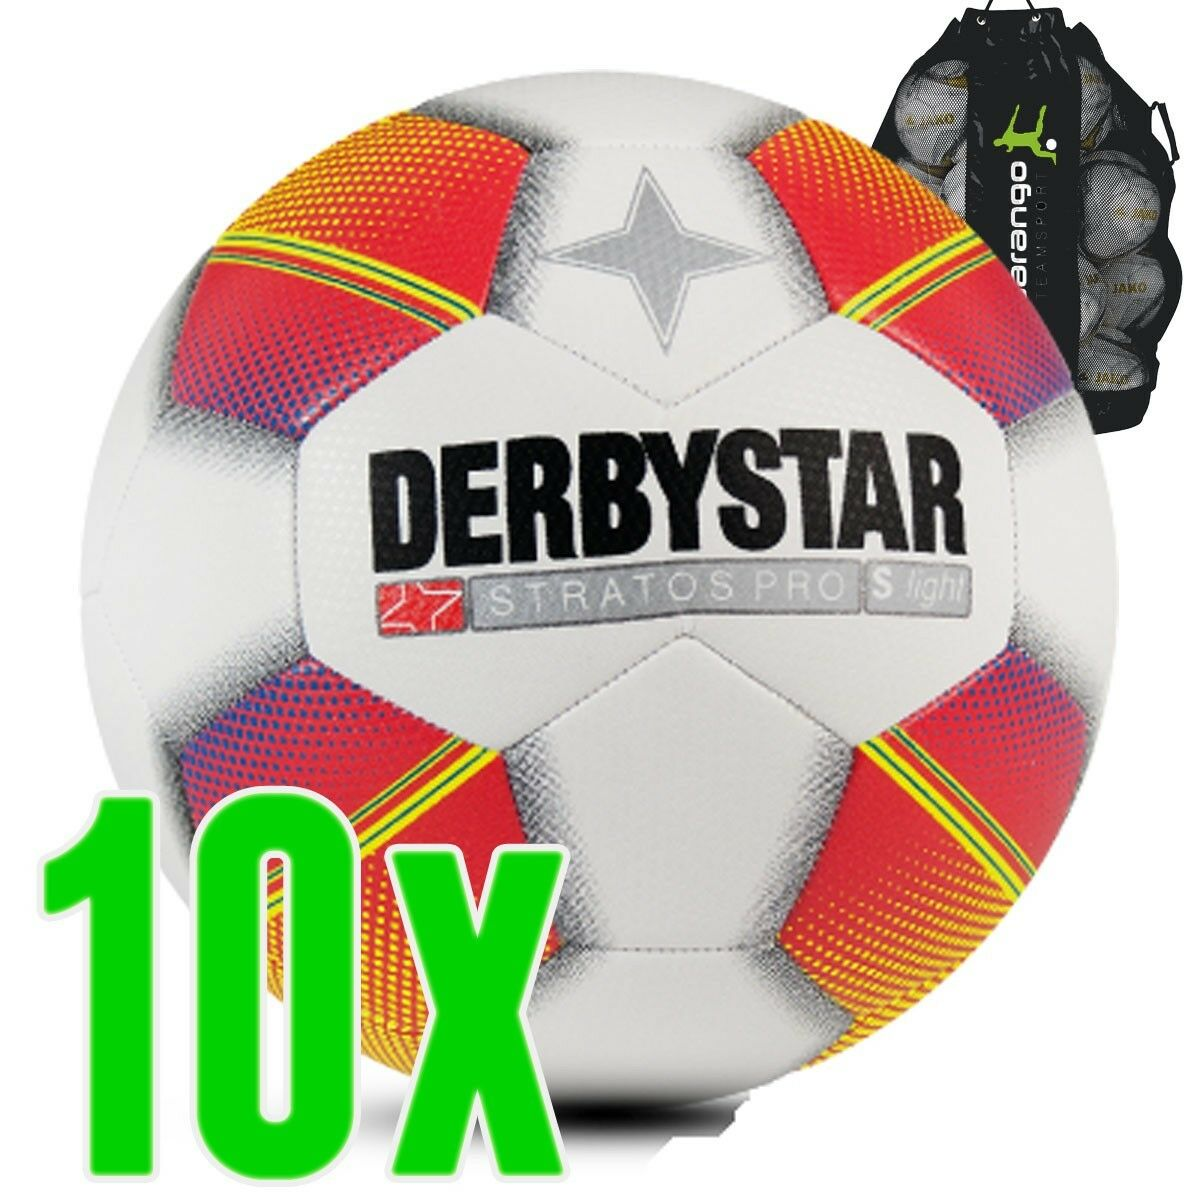 Derbystar Stratos Pro S-Light weiss rot gelb 10er Ballpaket Jugendball Kinder